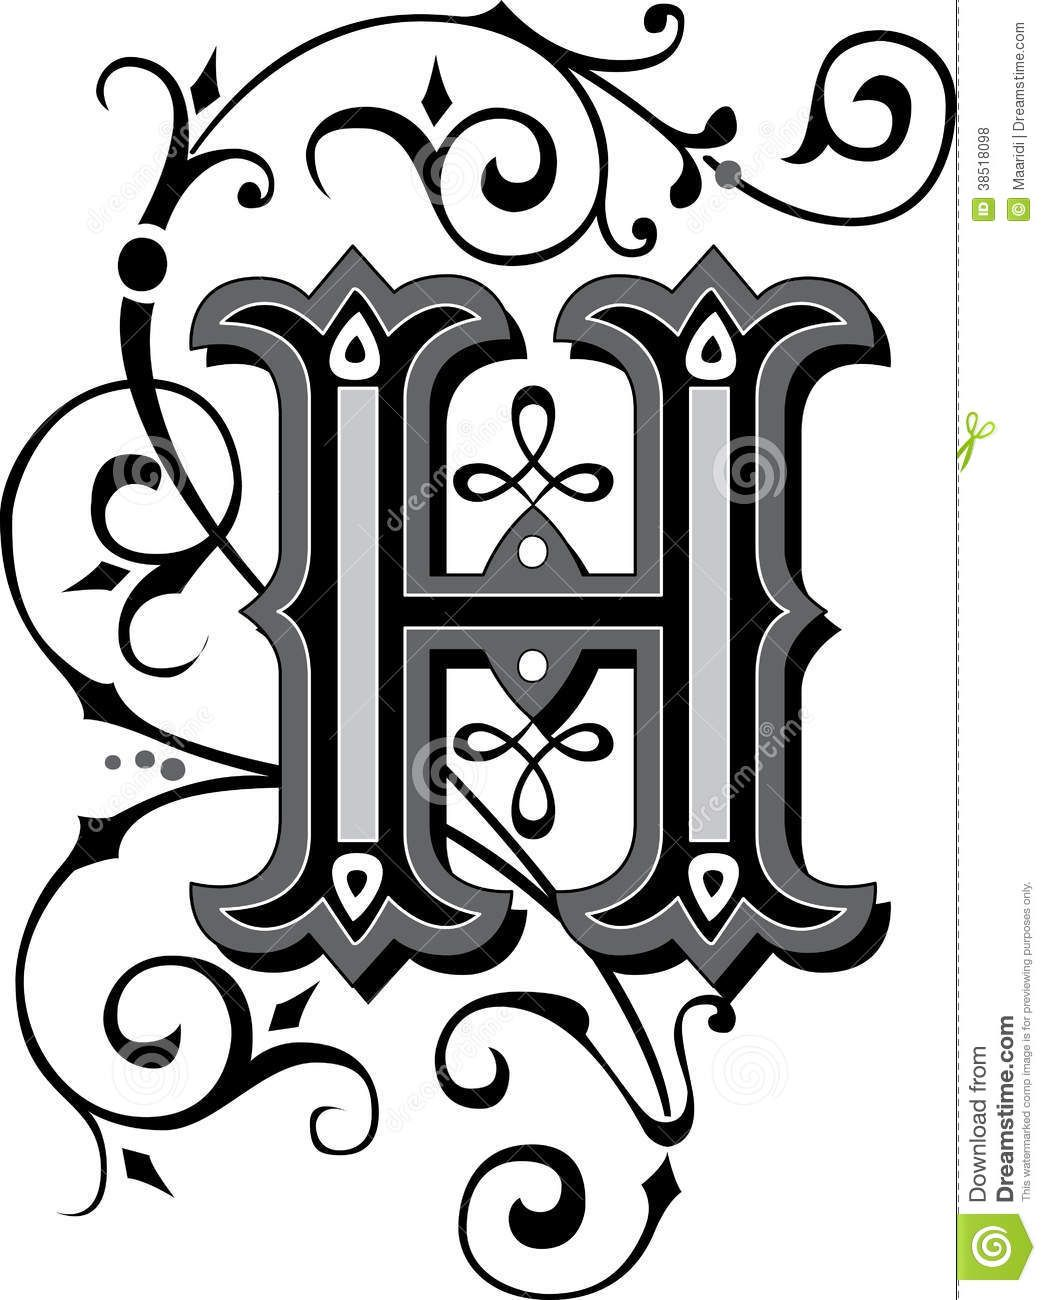 beautiful ornament letter h ornate english alphabets grayscale 38518098jpg 10461300 digital art pinterest